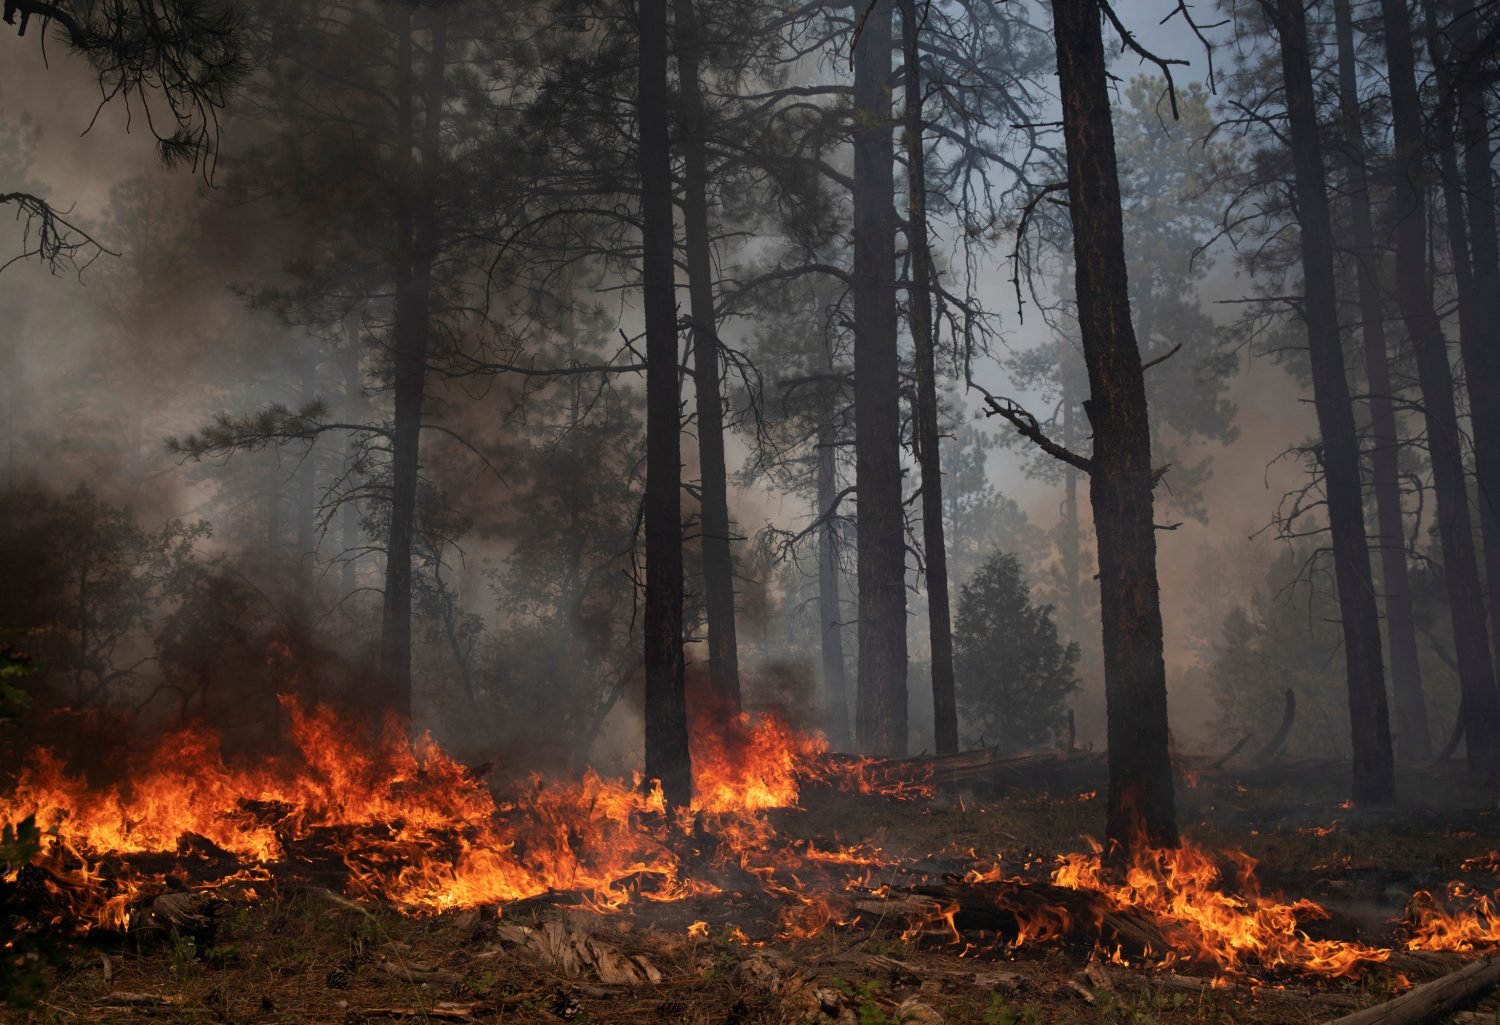 Ground fuels burn during a controlled burn administered by the U.S. Forest Service north of Gallina, New Mexico, U.S. August 15, 2019. REUTERS/Adria Malcolm